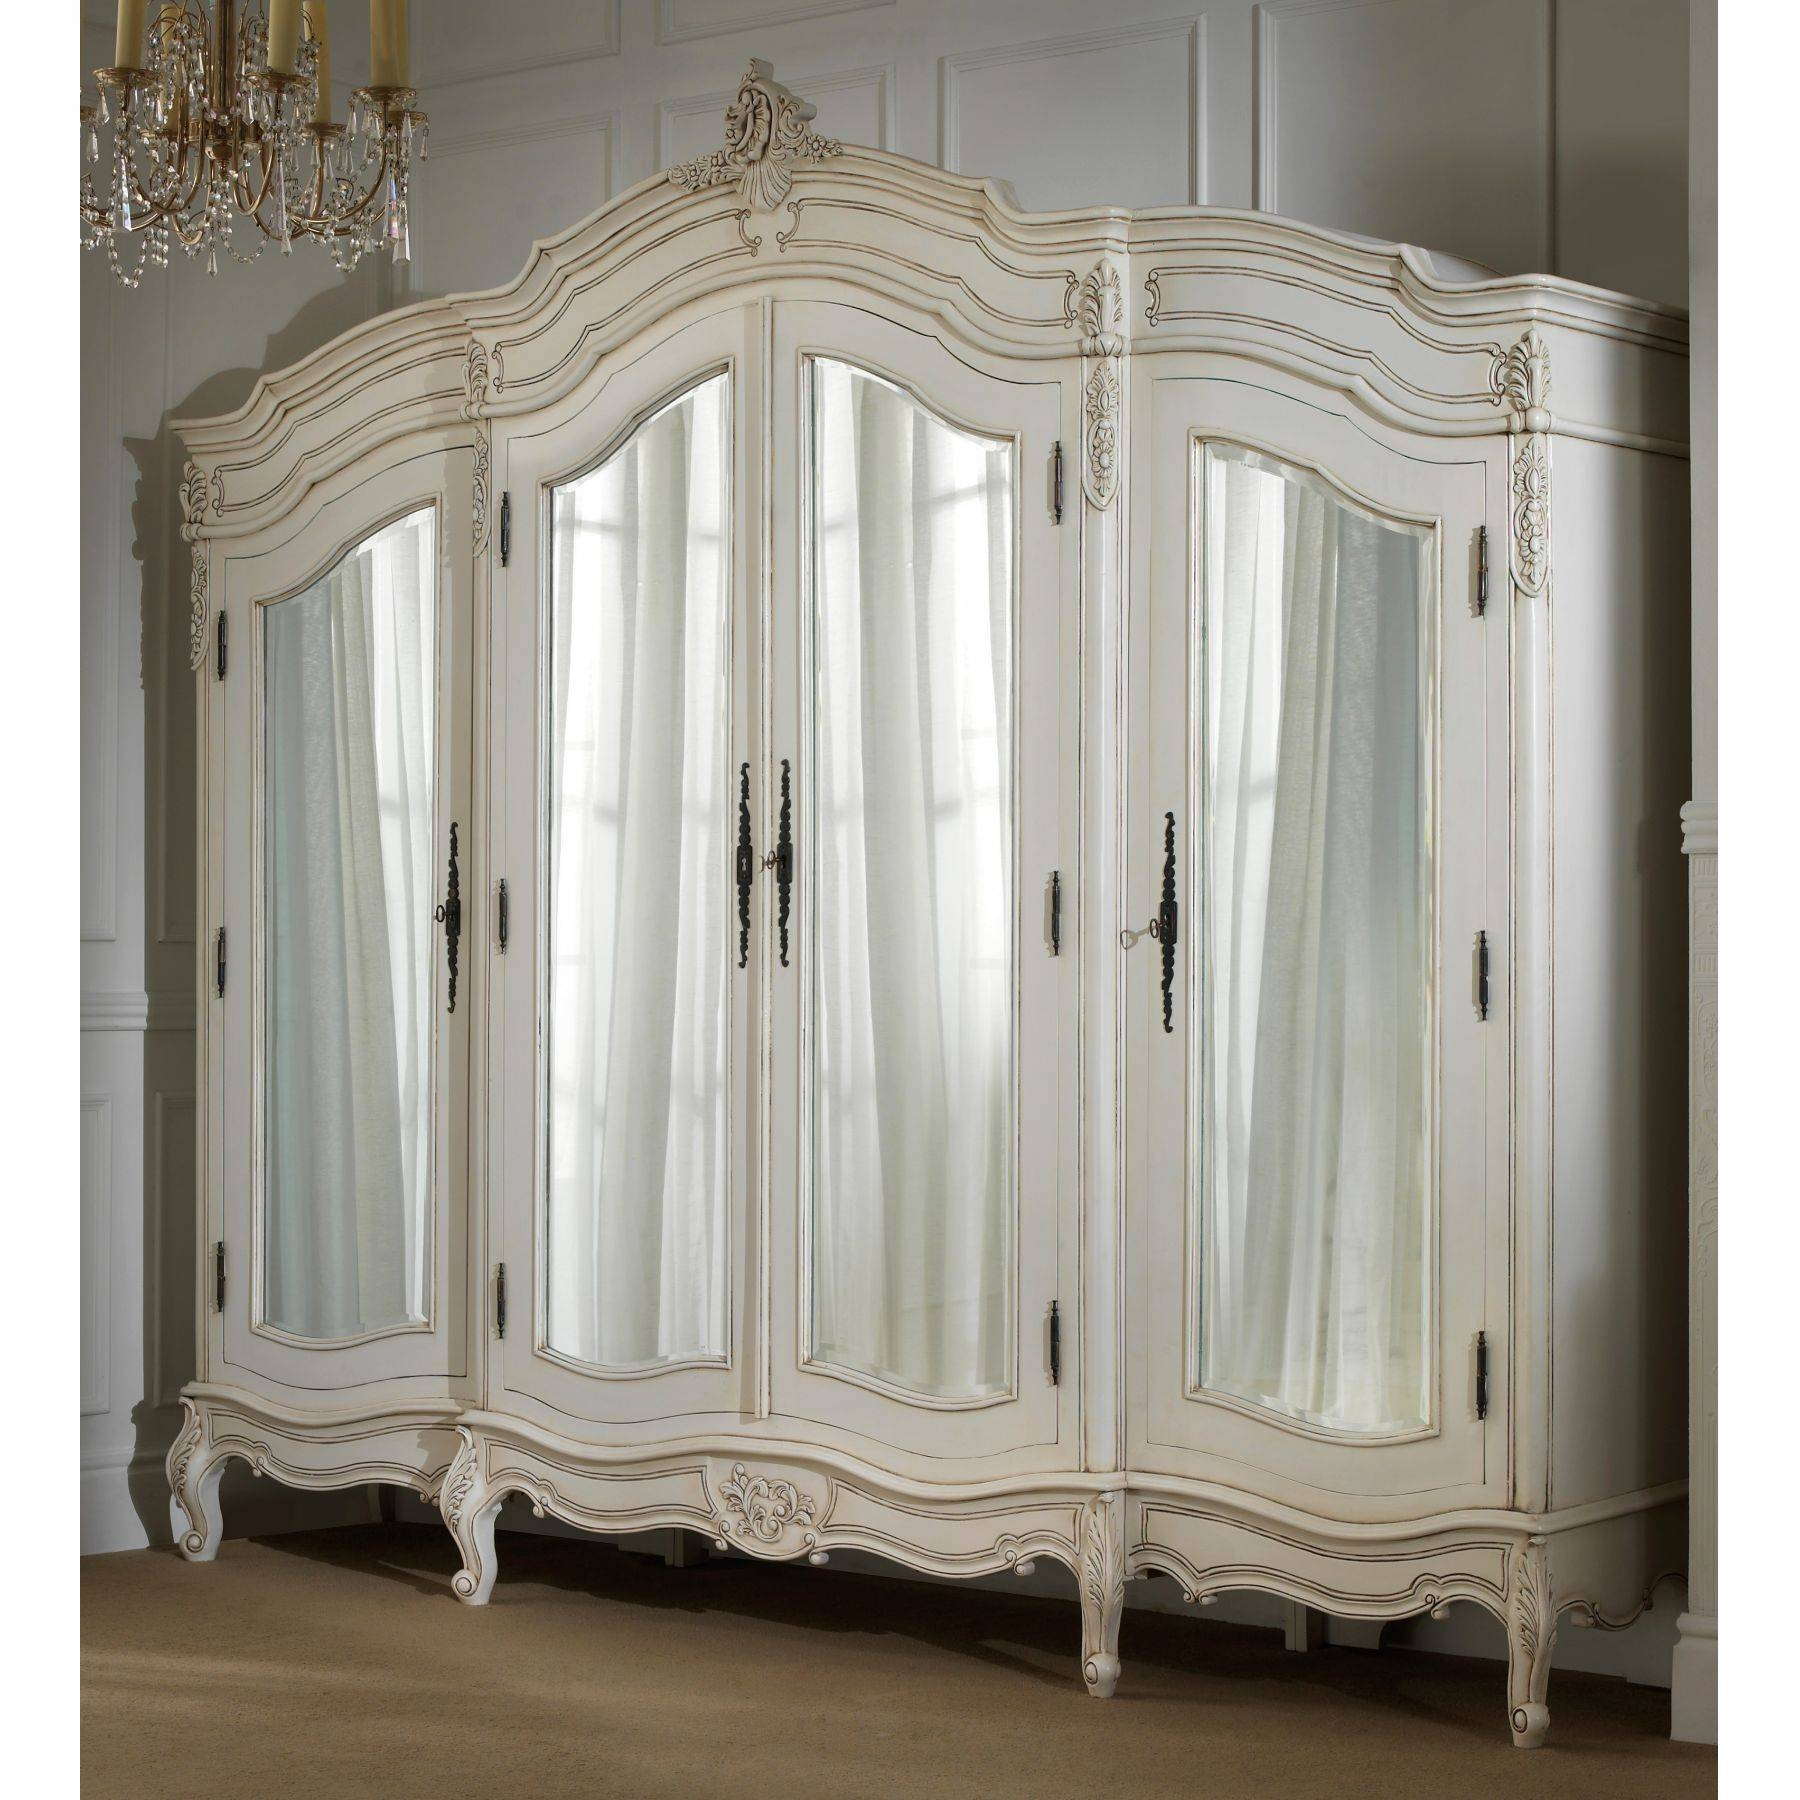 Bedroom: Interesting Brusali Wardrobe Cabinets For Your Bedroom Within 3 Door French Wardrobes (View 3 of 15)